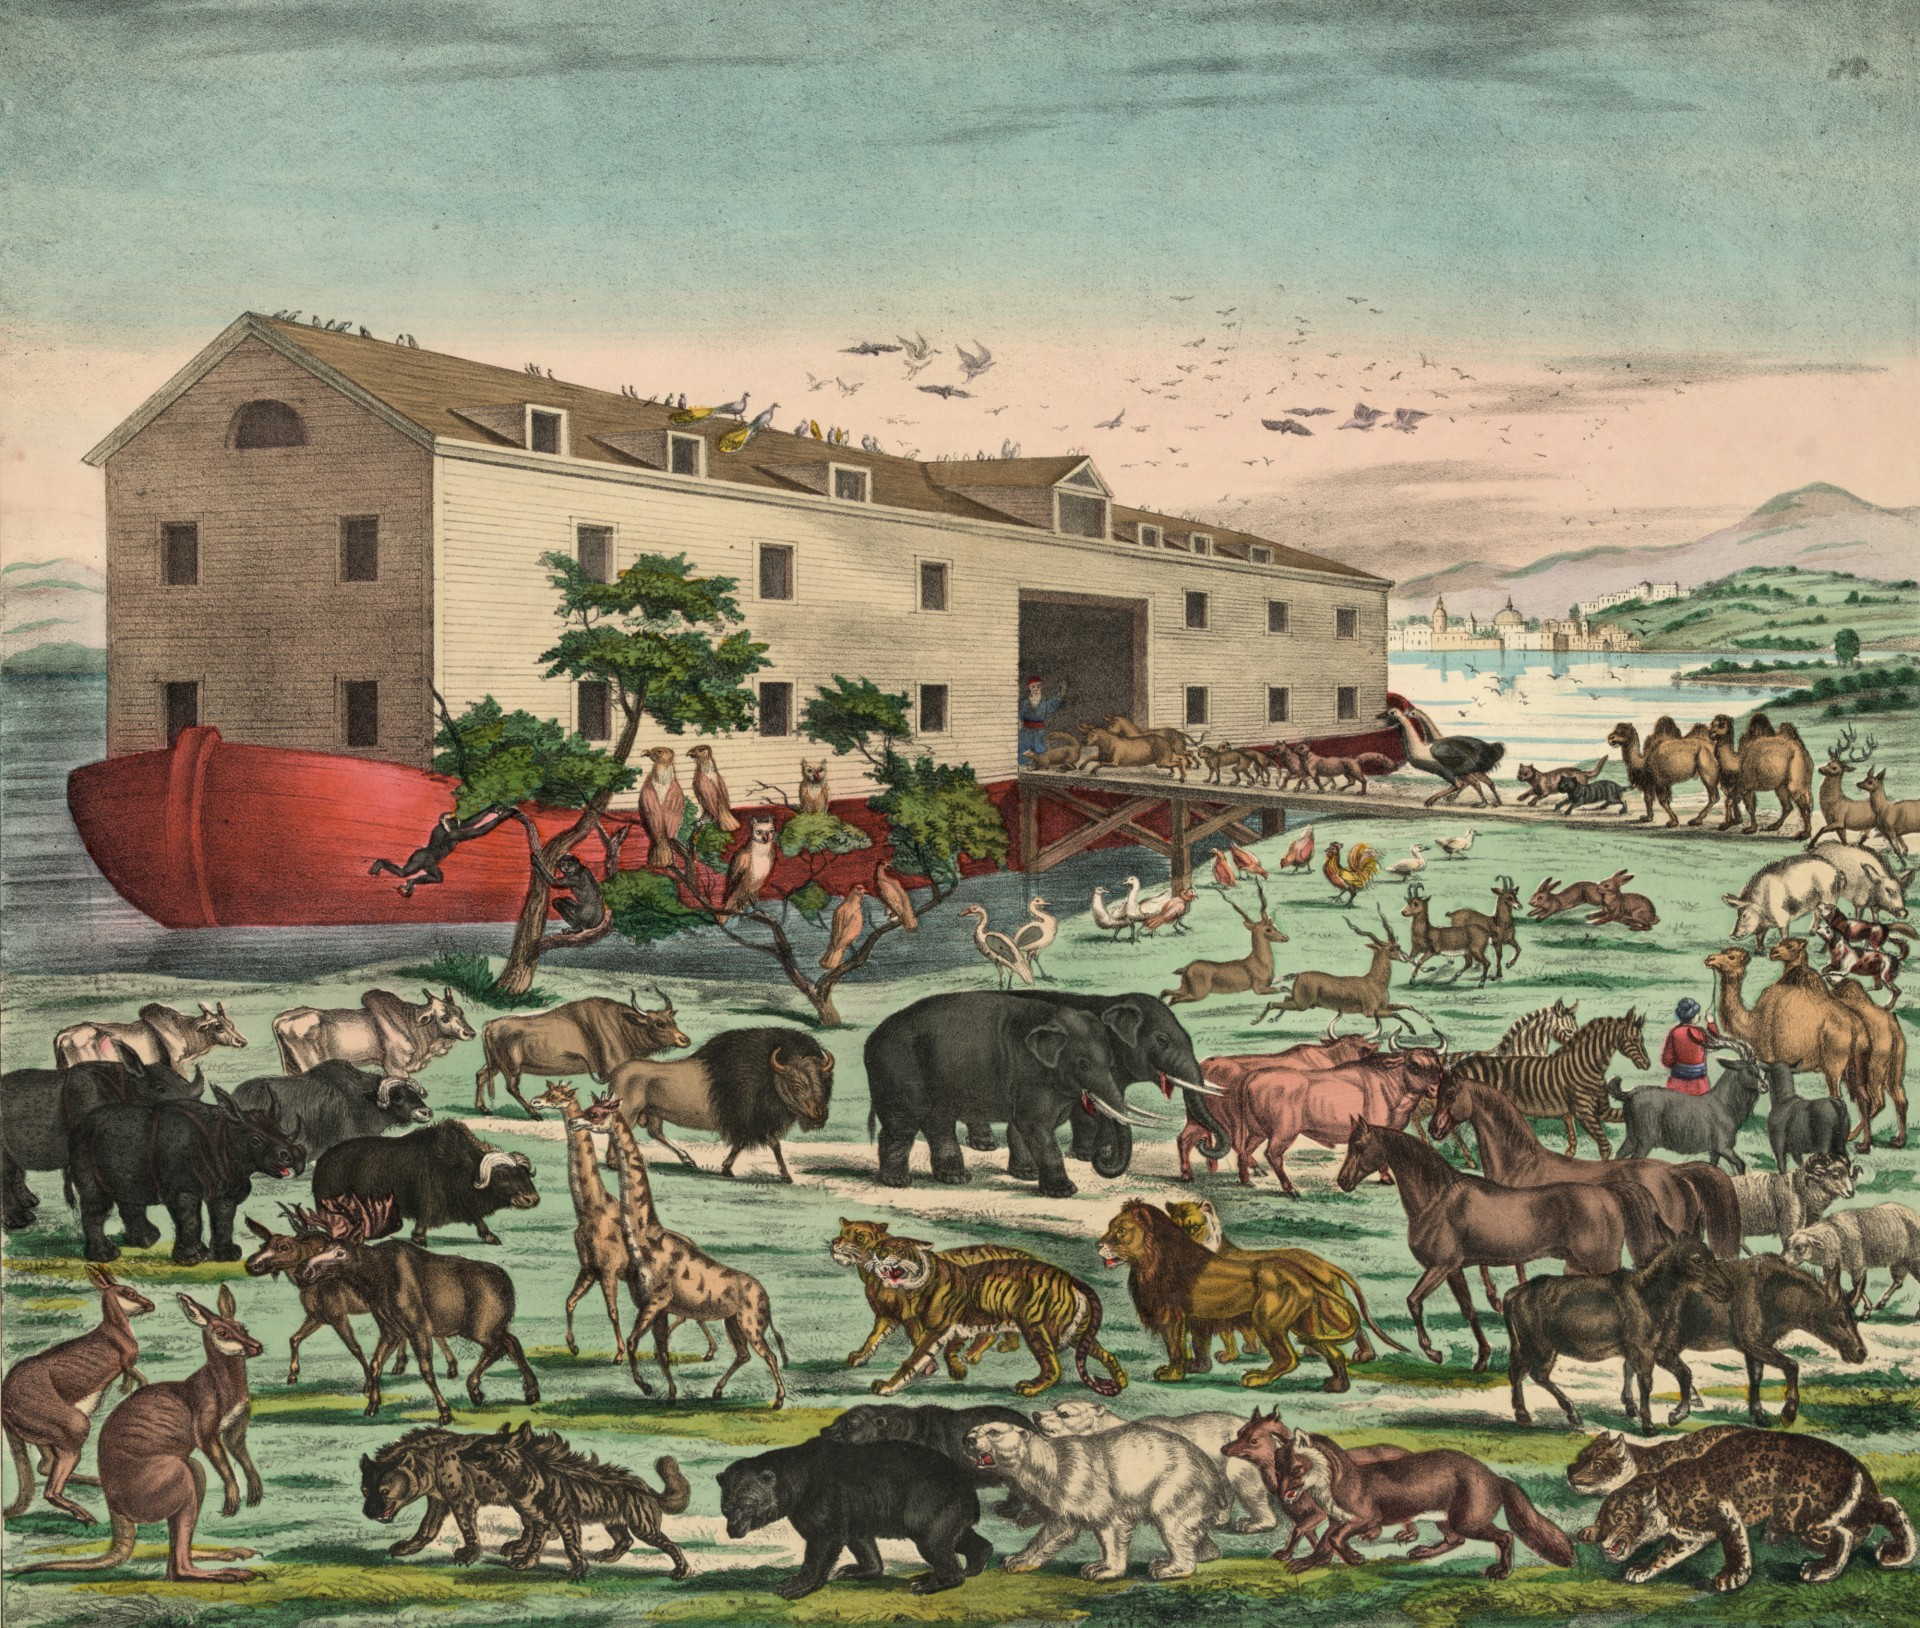 Vintage Noahs Ark Illustration